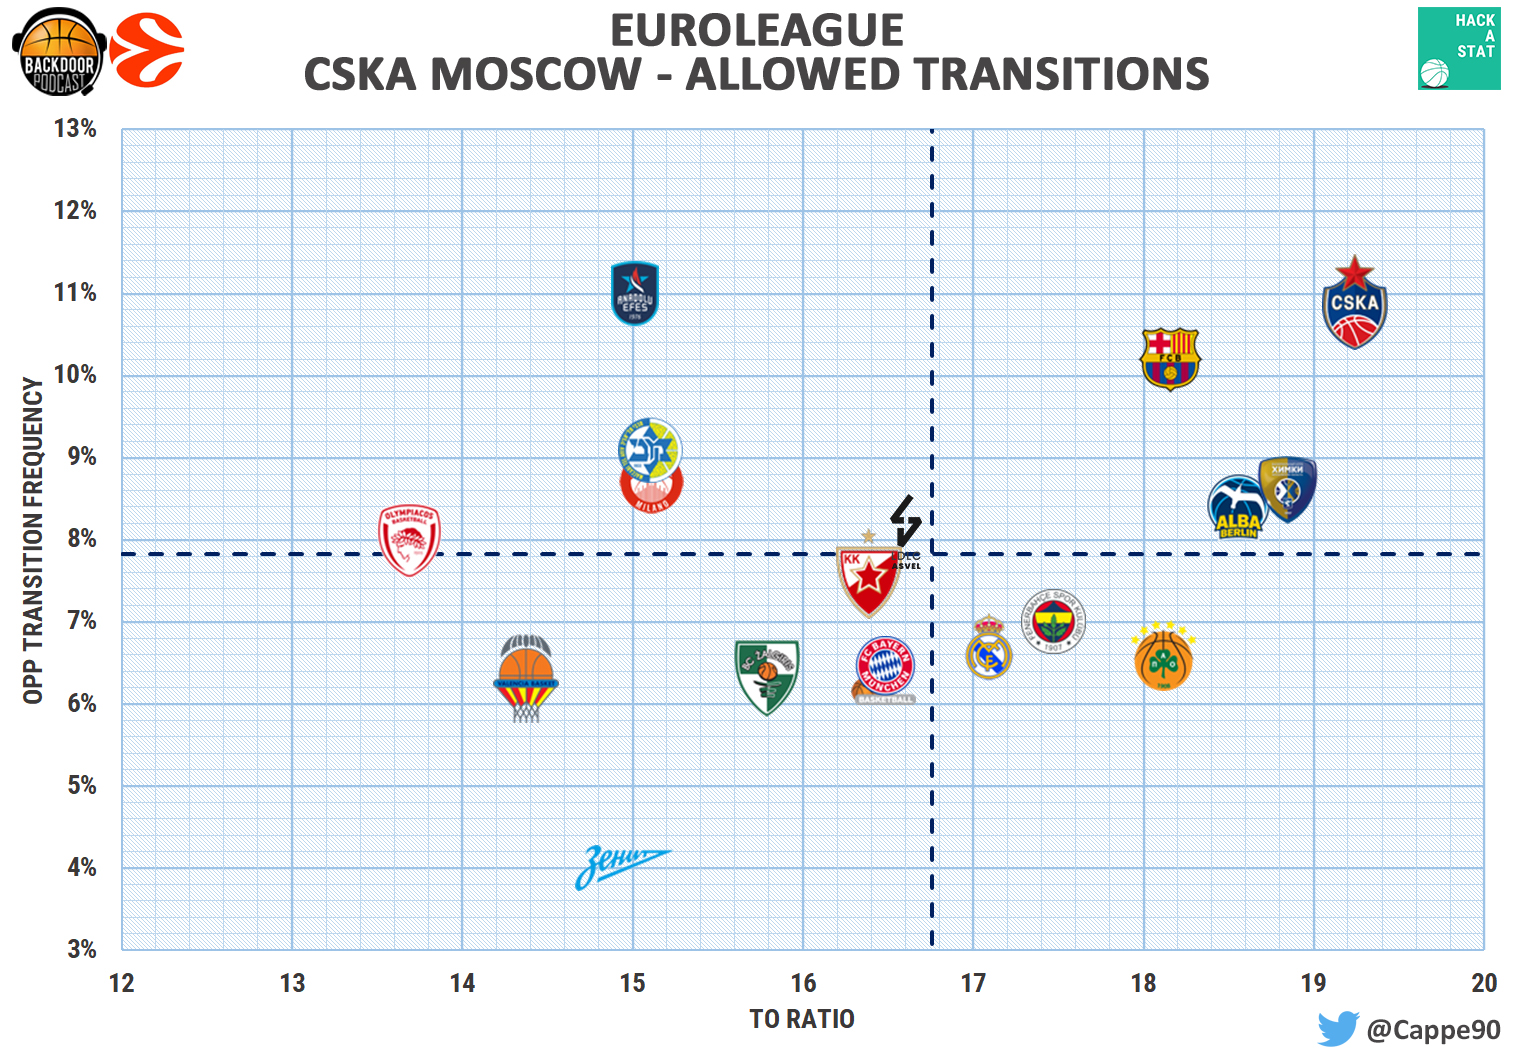 CSKA Moscow transitions allowed